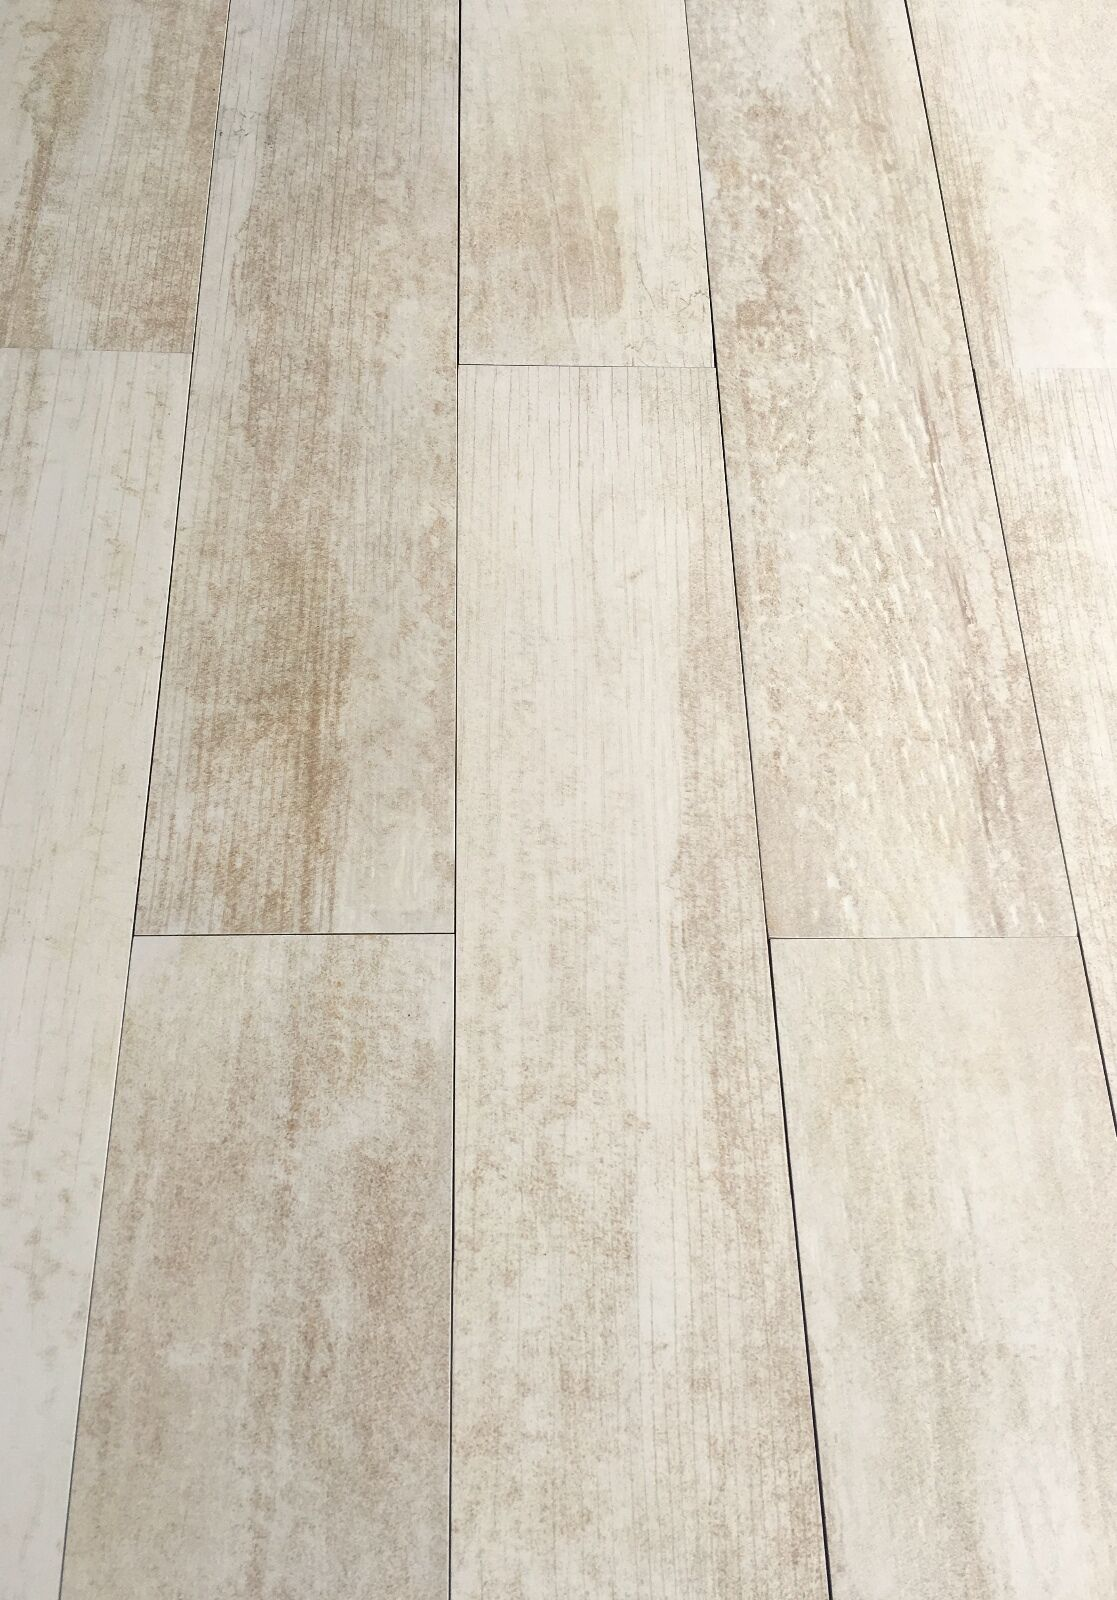 5x24 rectified wood look oak porcelain plank tile floor per picture 1 of 3 dailygadgetfo Choice Image